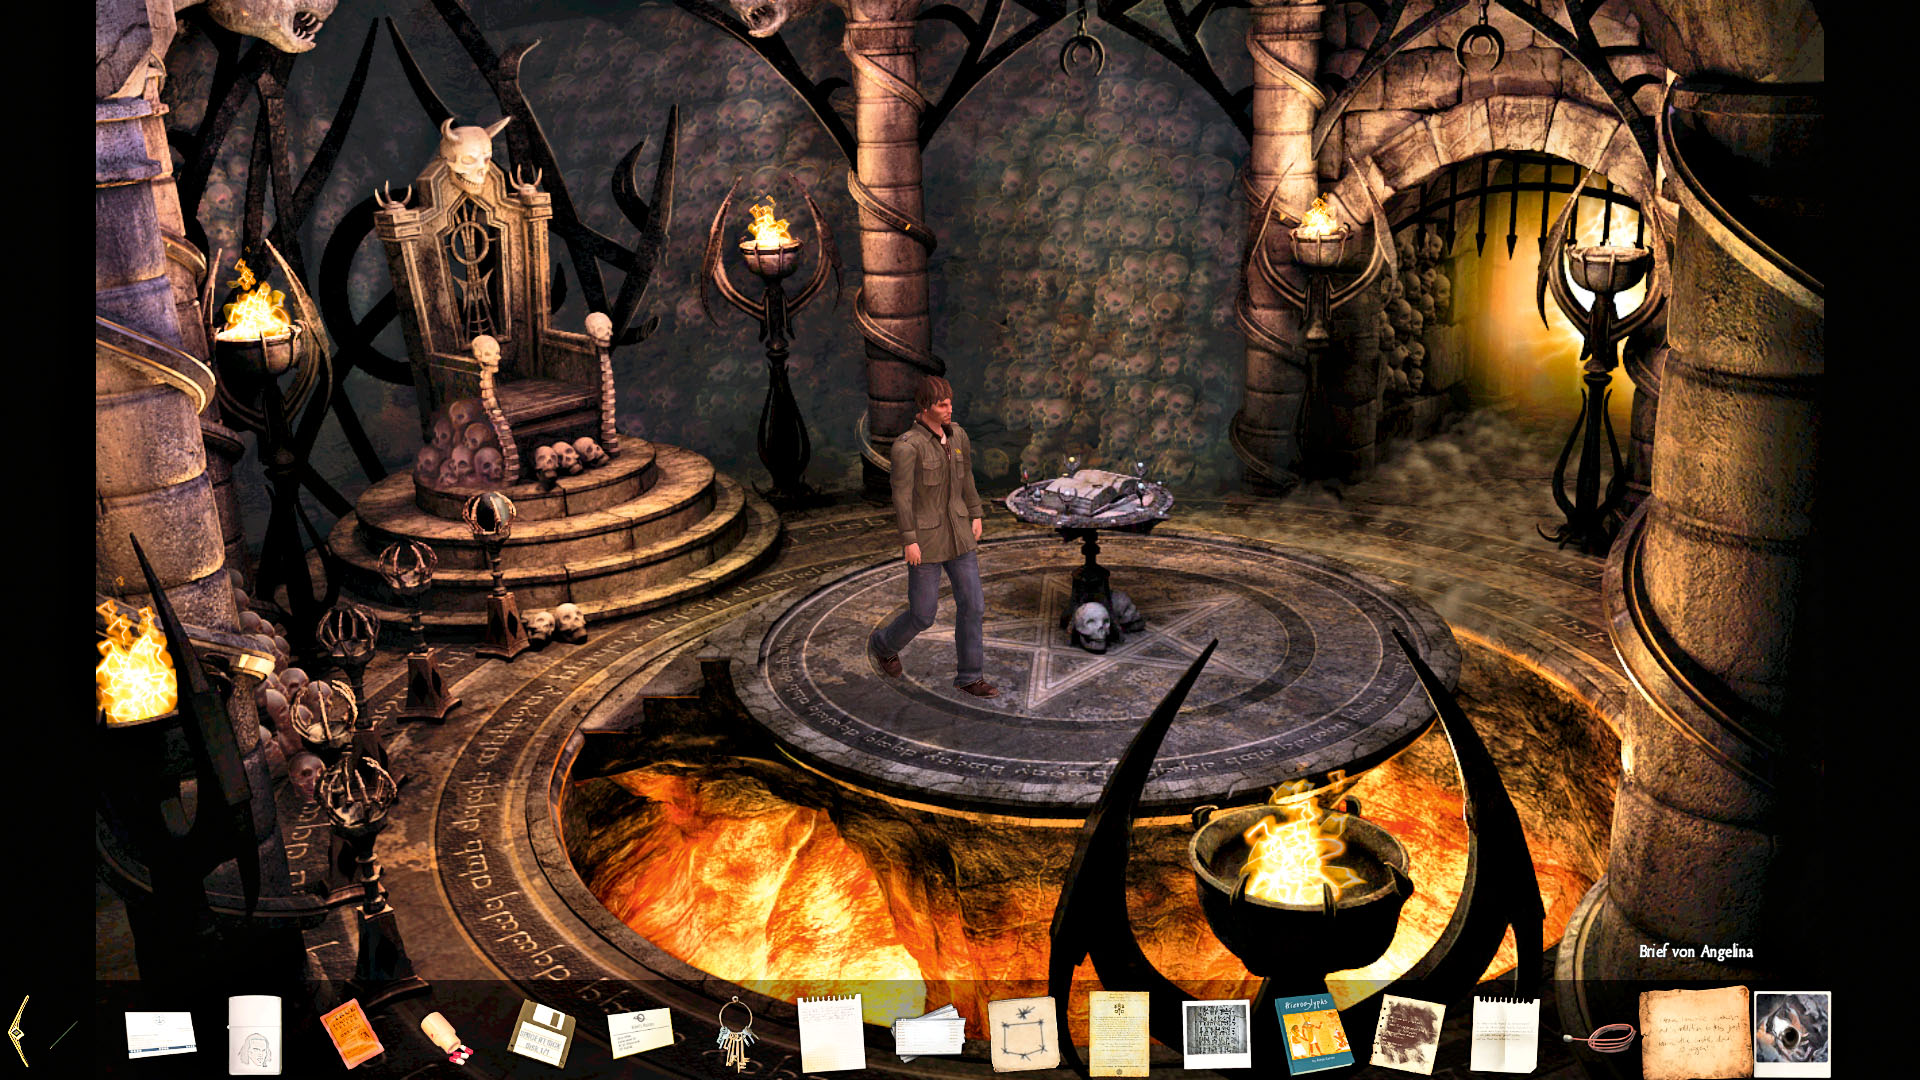 http://www.gamezone.de/screenshots/original/2011/02/Black-Mirror-3-Aufmacher.jpg